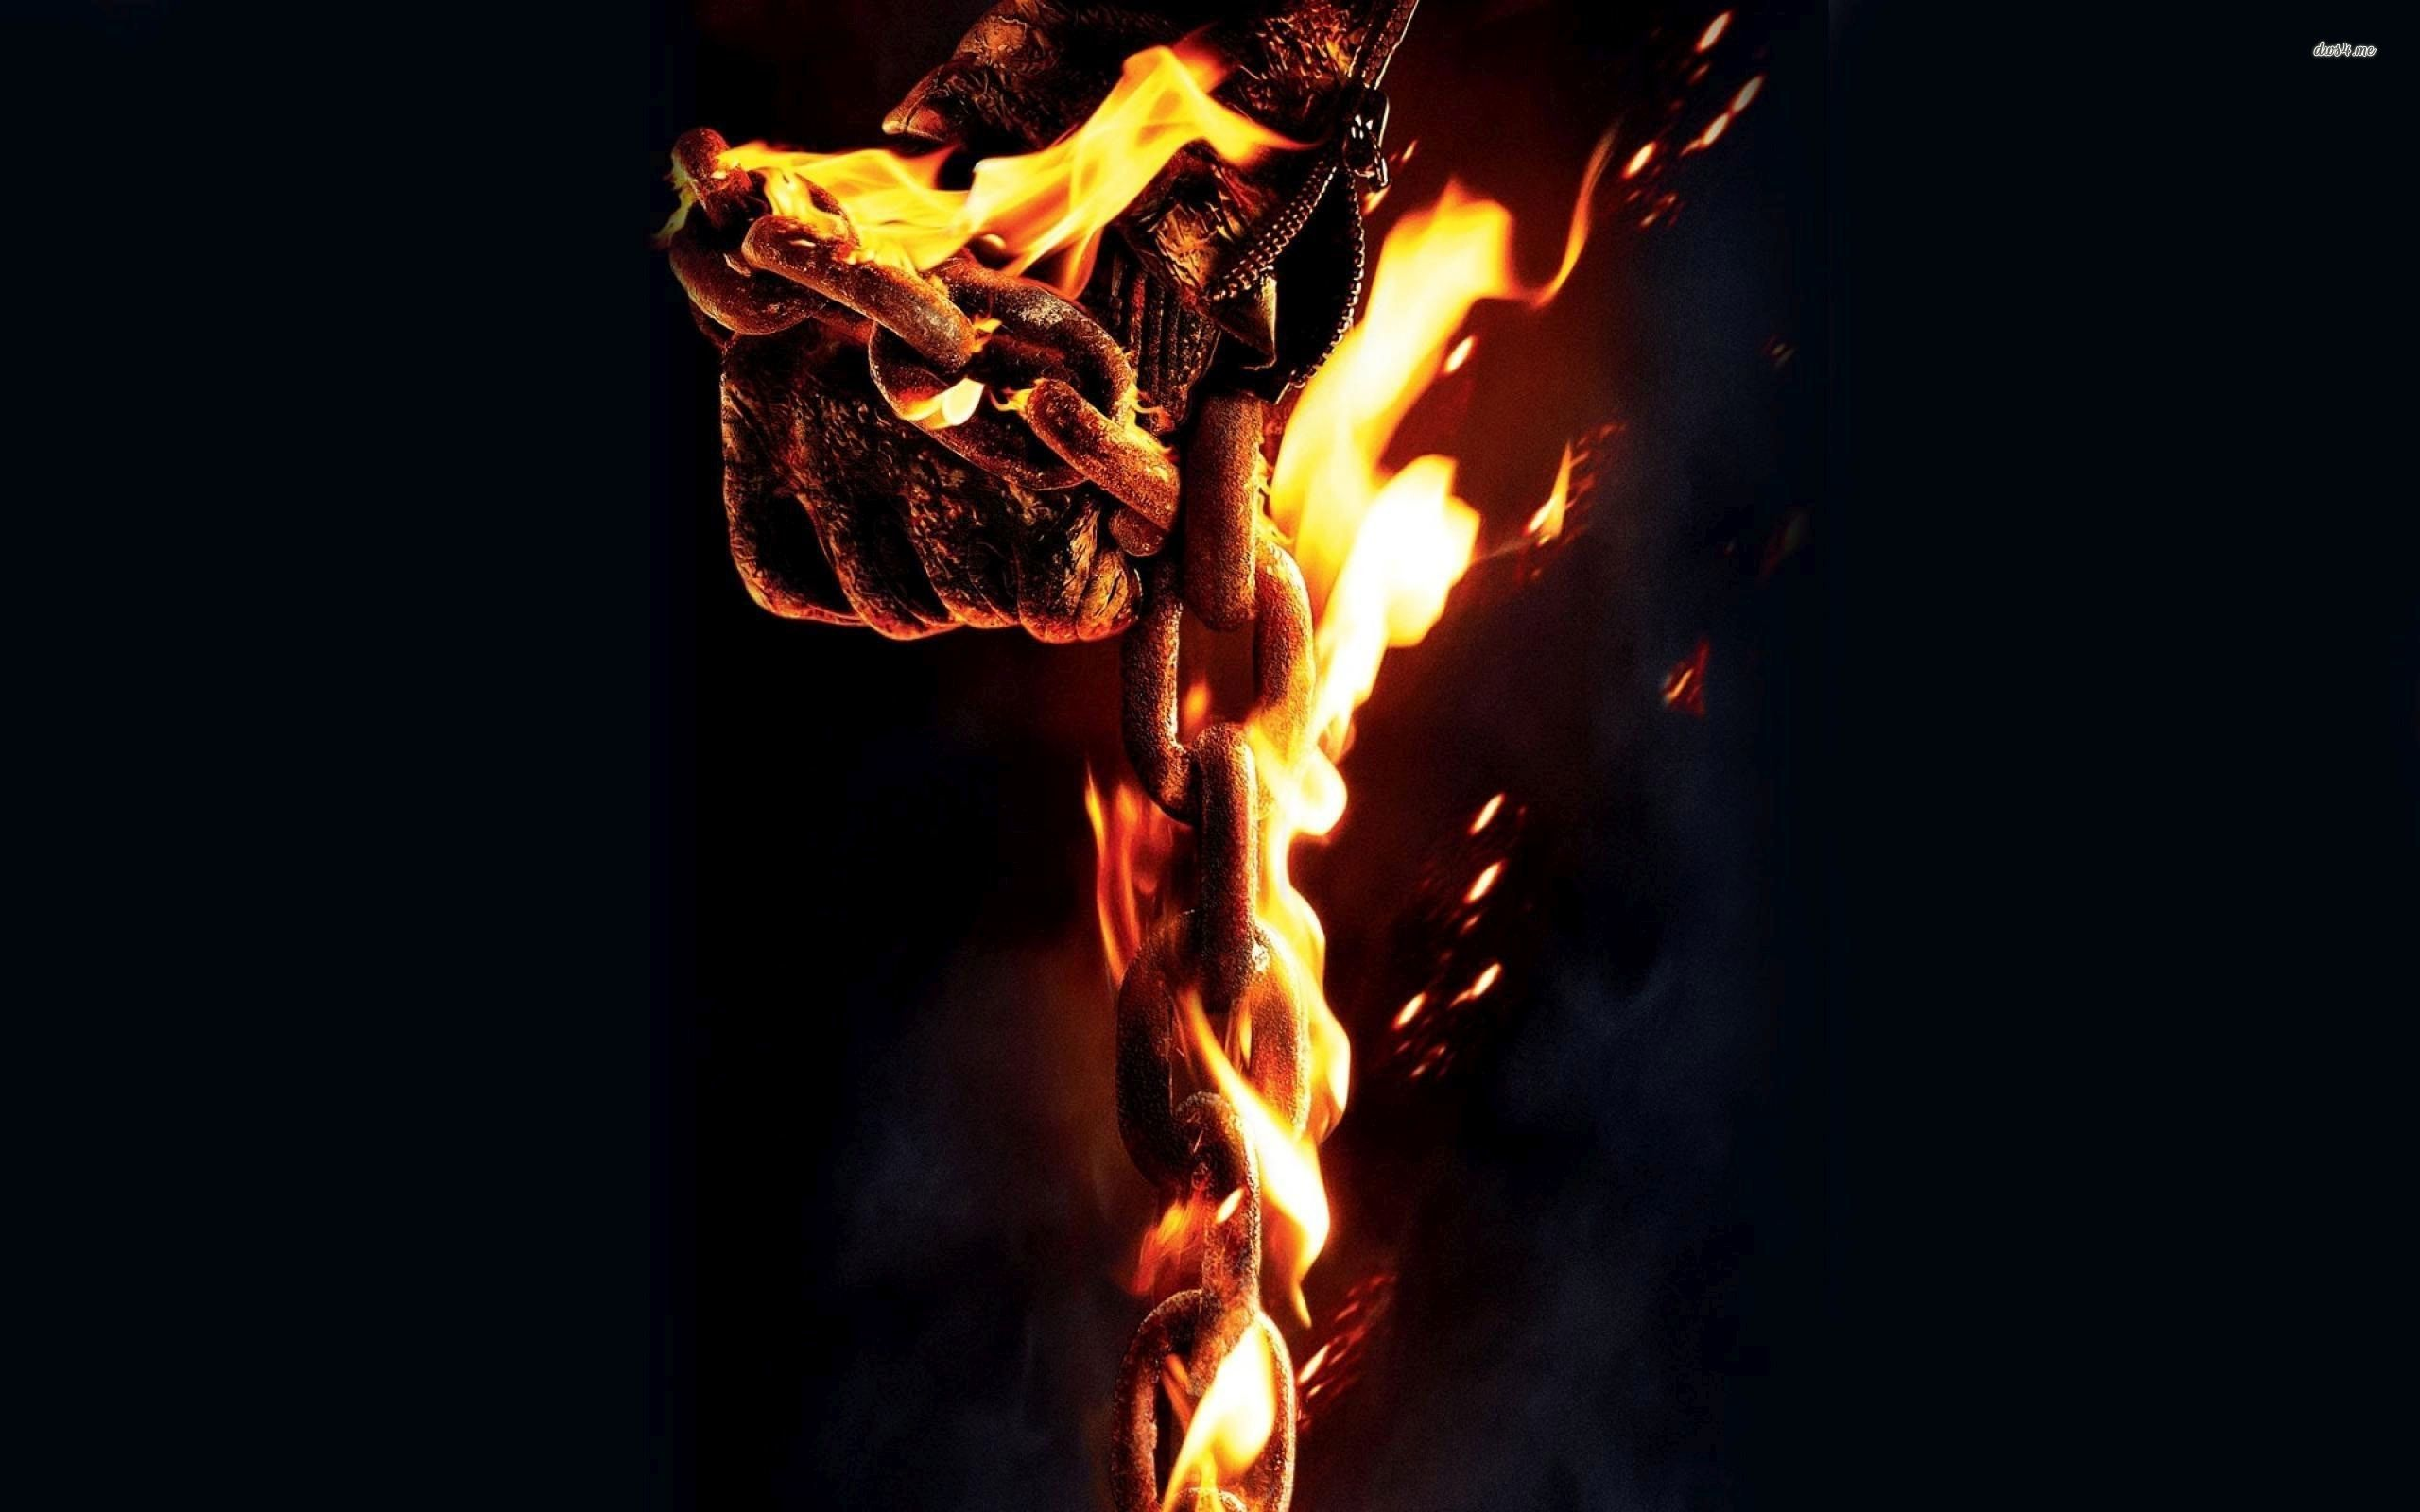 72 Ghost Rider Wallpapers On Wallpaperplay Ghost Rider